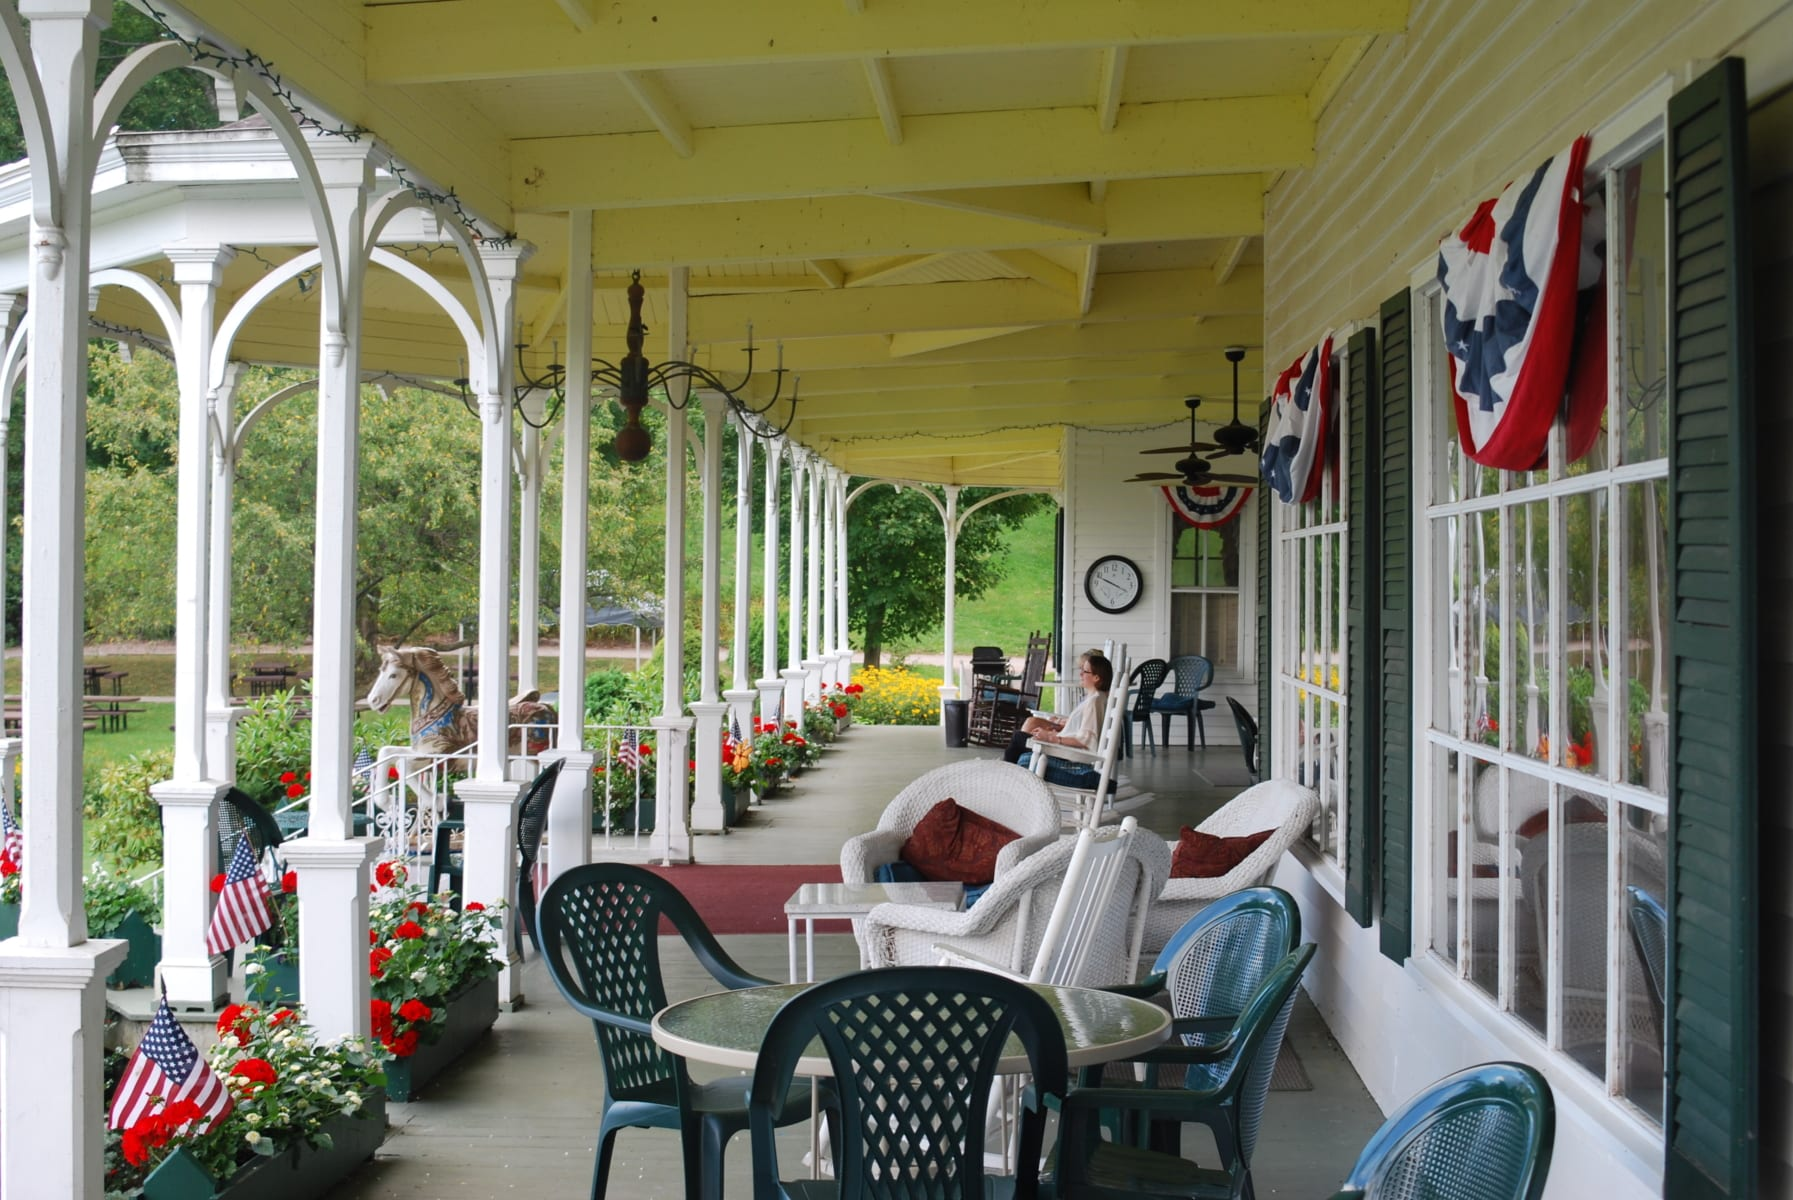 Outdoor front porch during summer